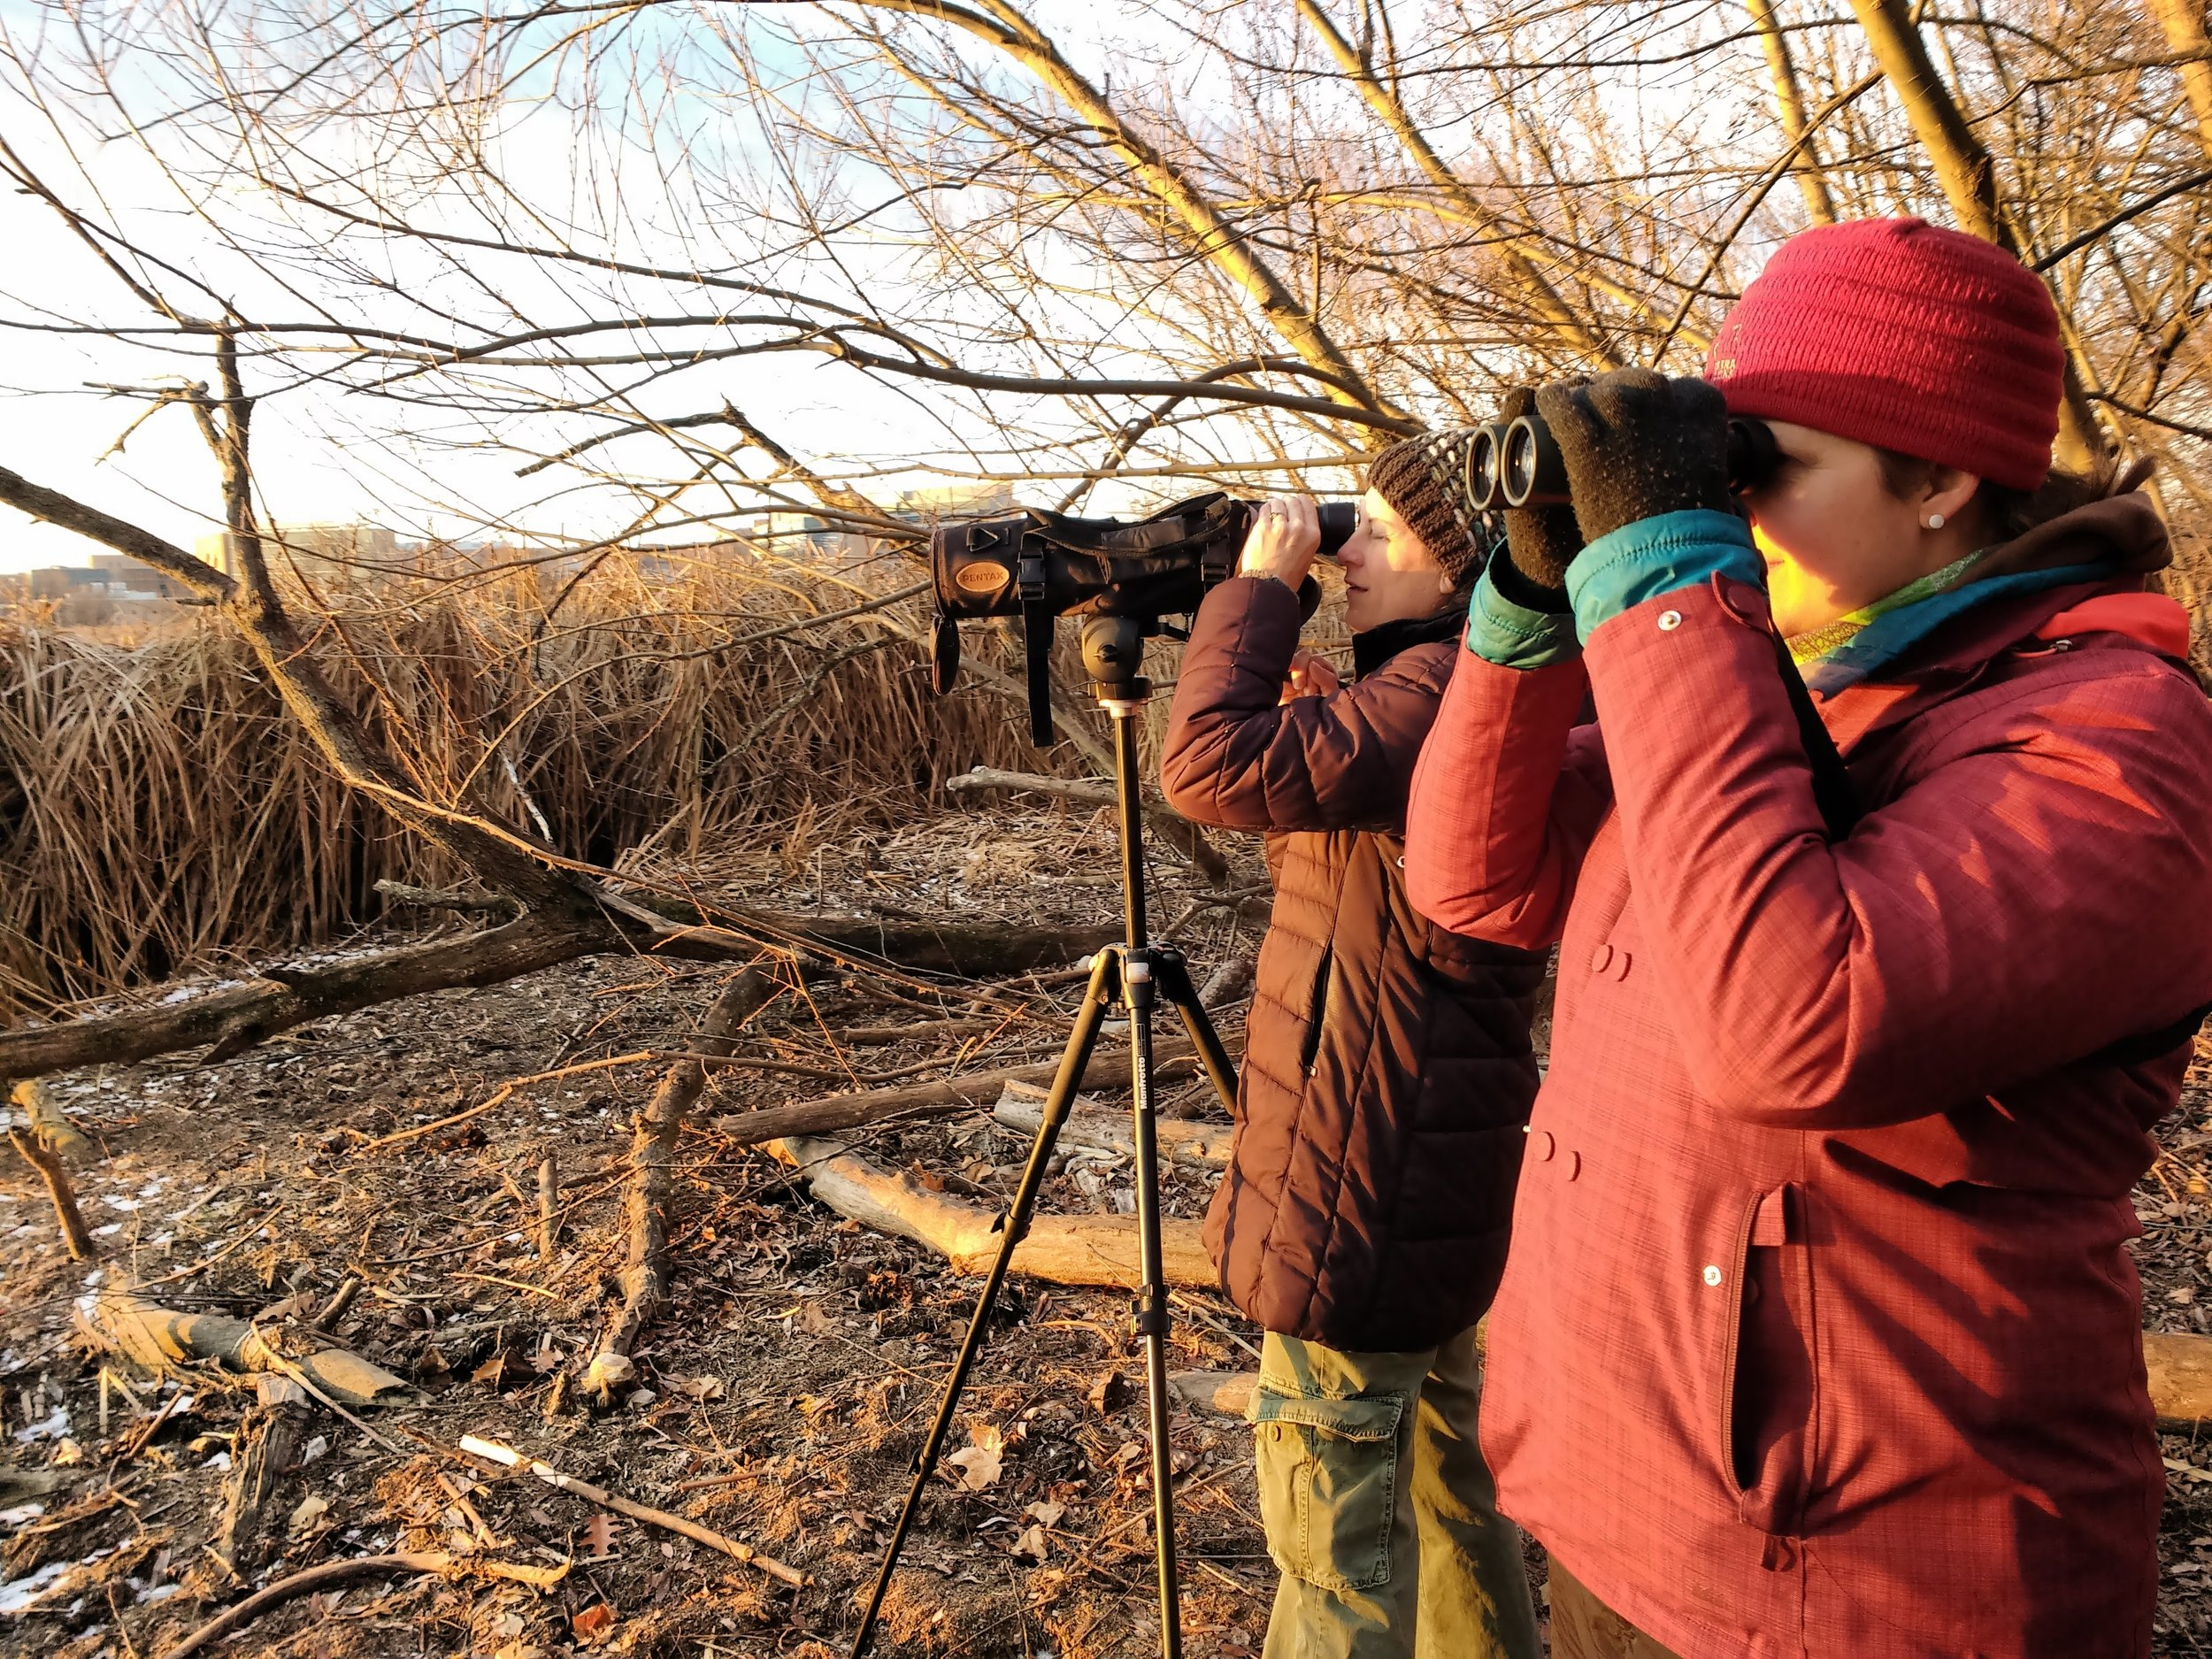 Holiday birders are searching for feathered friends on Lake Mendota during the 2017 Christmas Bird Count. Photo by Carolyn Byers.